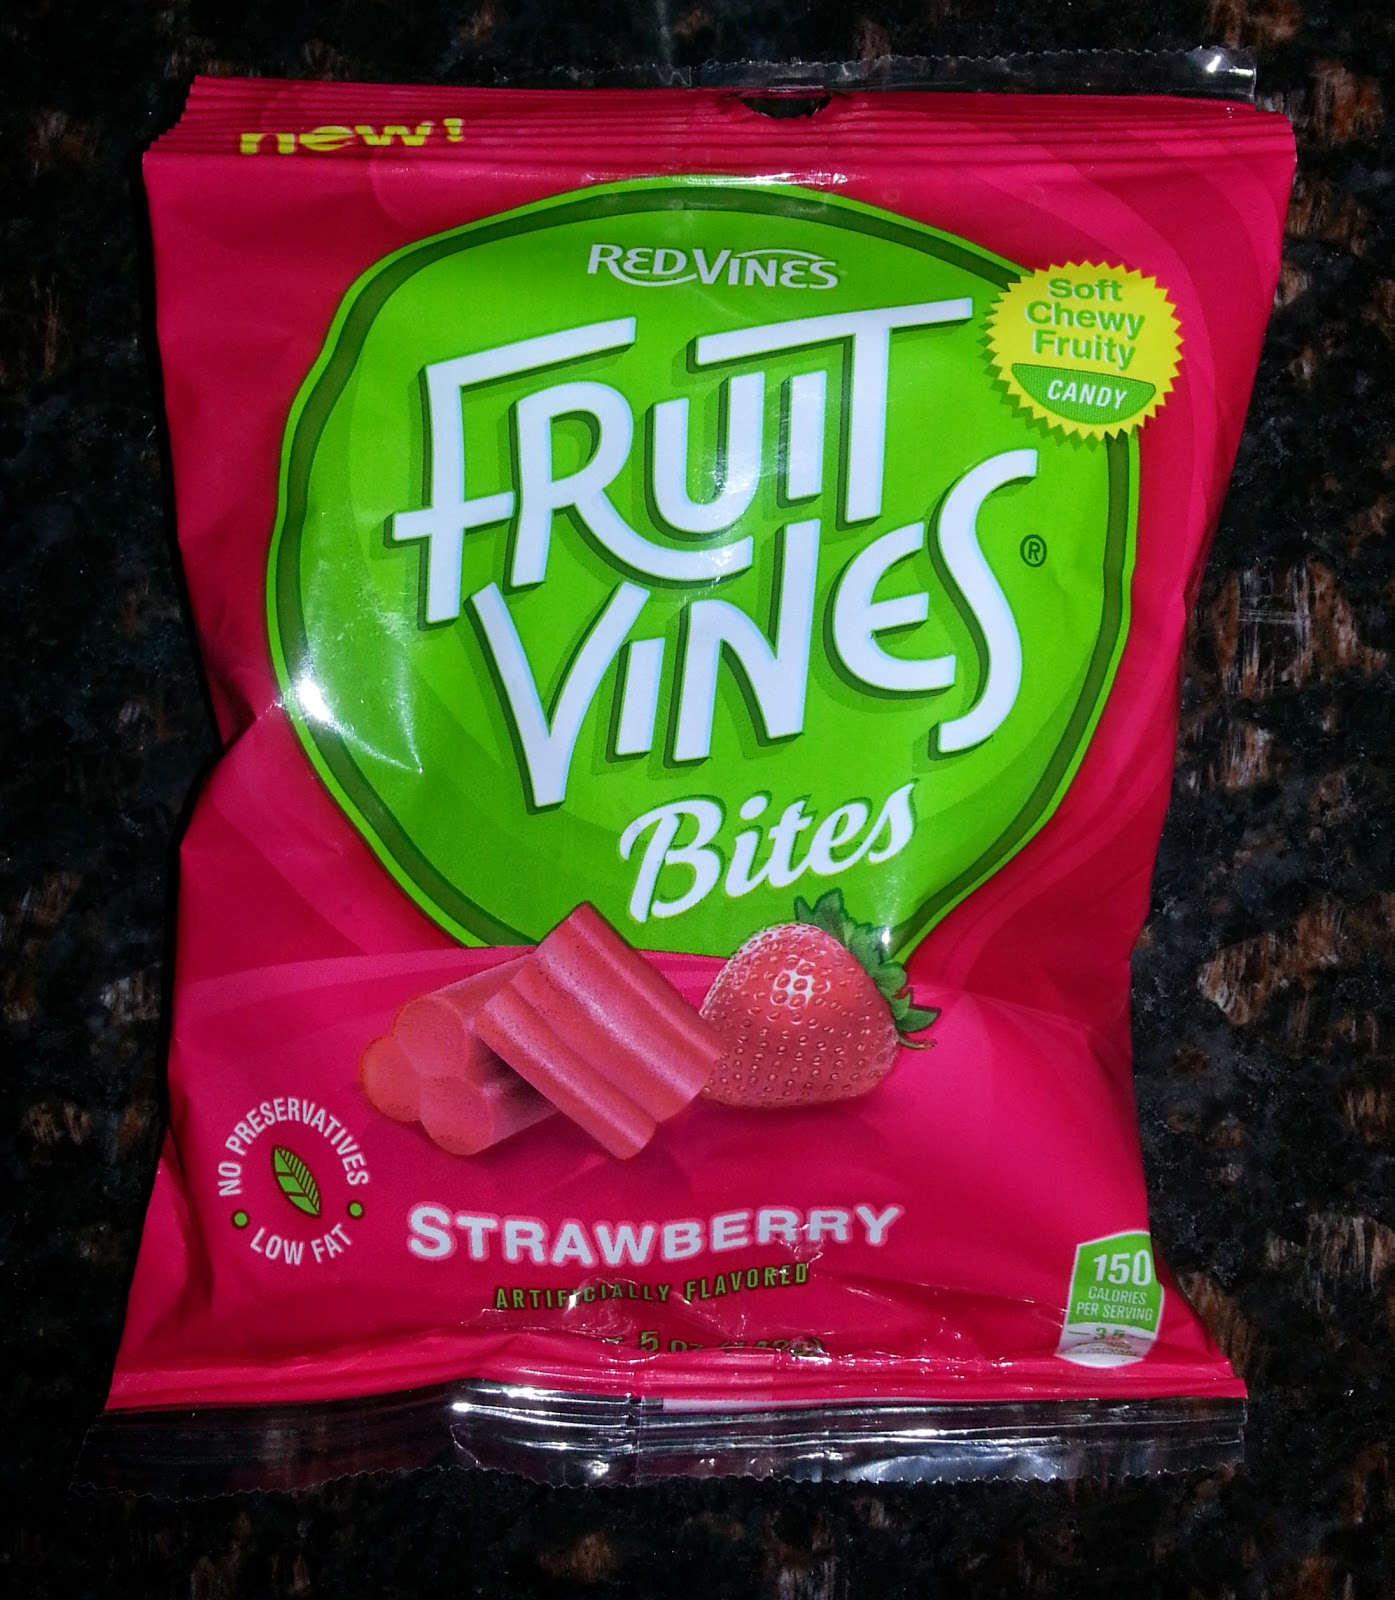 Red Vines Fruit Vines Bites in Strawberry